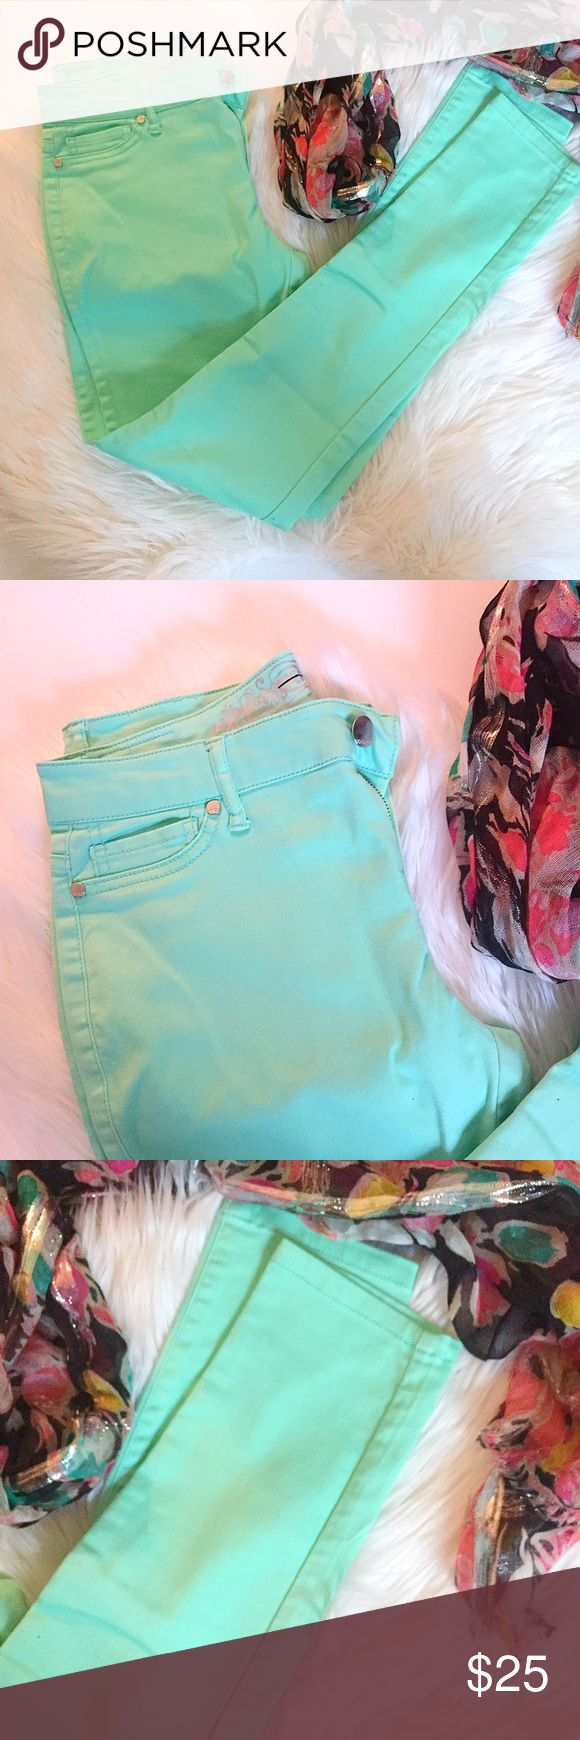 Express Mint Colored Skinny Jeans Like new colorful skinny denim pants from Express. Beautiful vibrant mint color. Never been worn. Line through label to indicate overstock purchase. Perfect condition. Express Pants Skinny